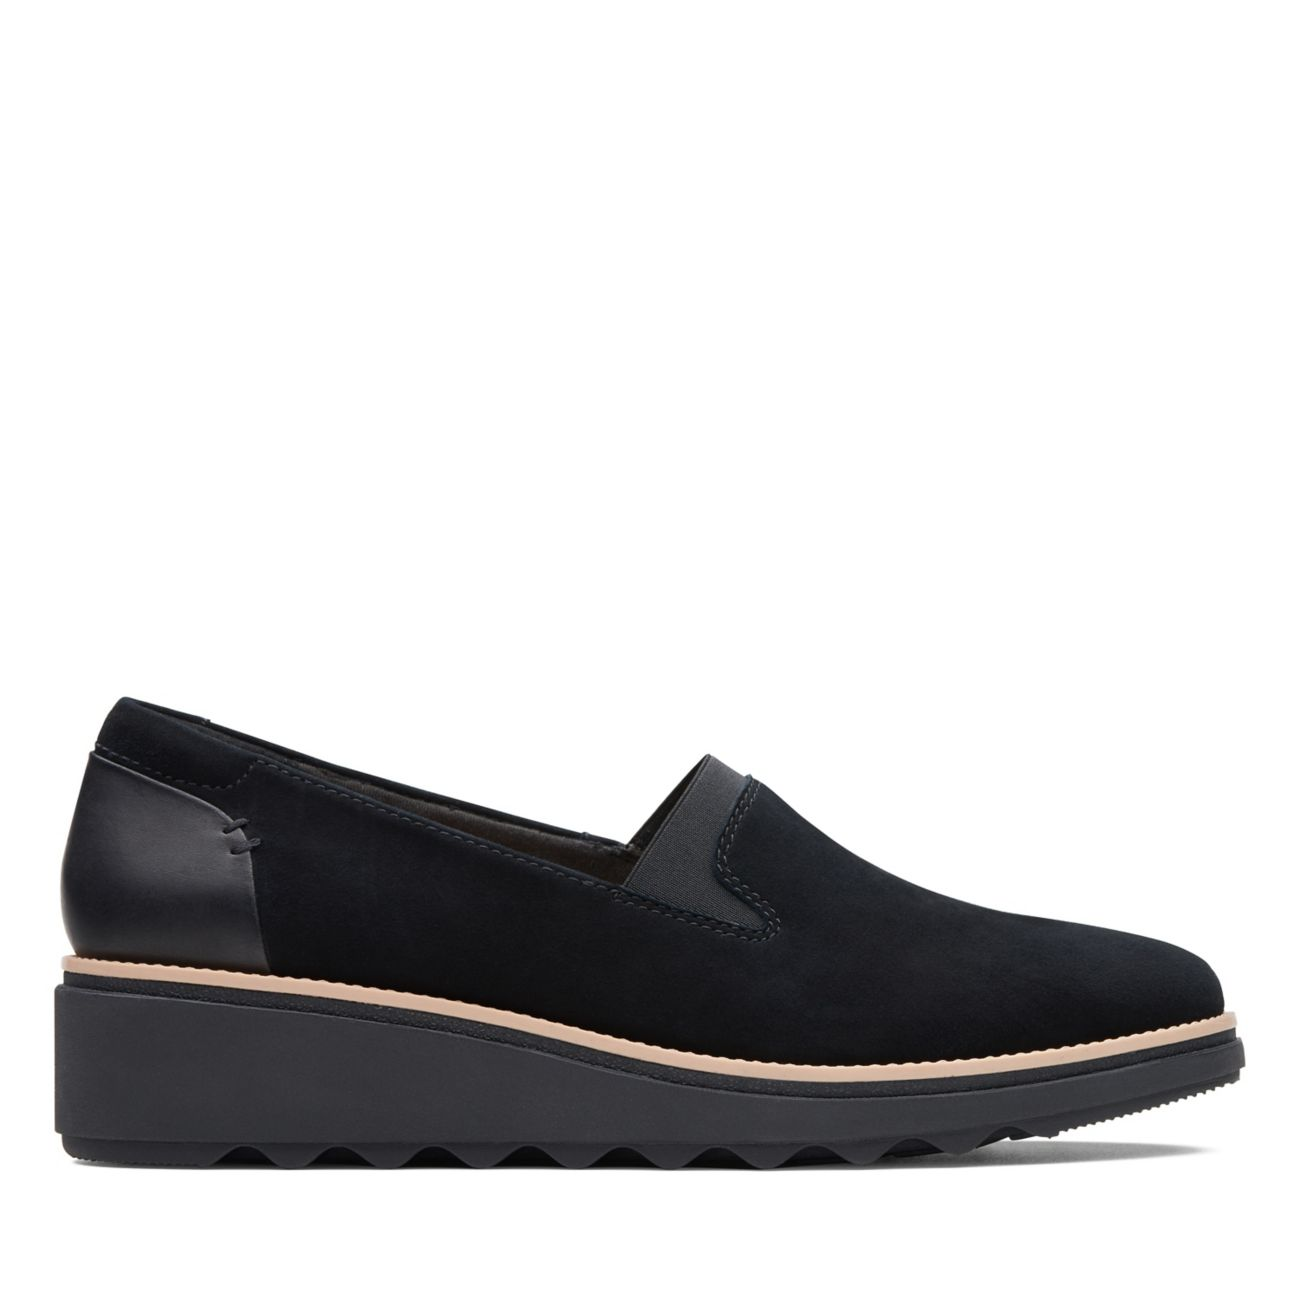 0xop8nkw Sharon Shoes Suede Women's Official Dolly Clarks® Black H9bD2EYeIW